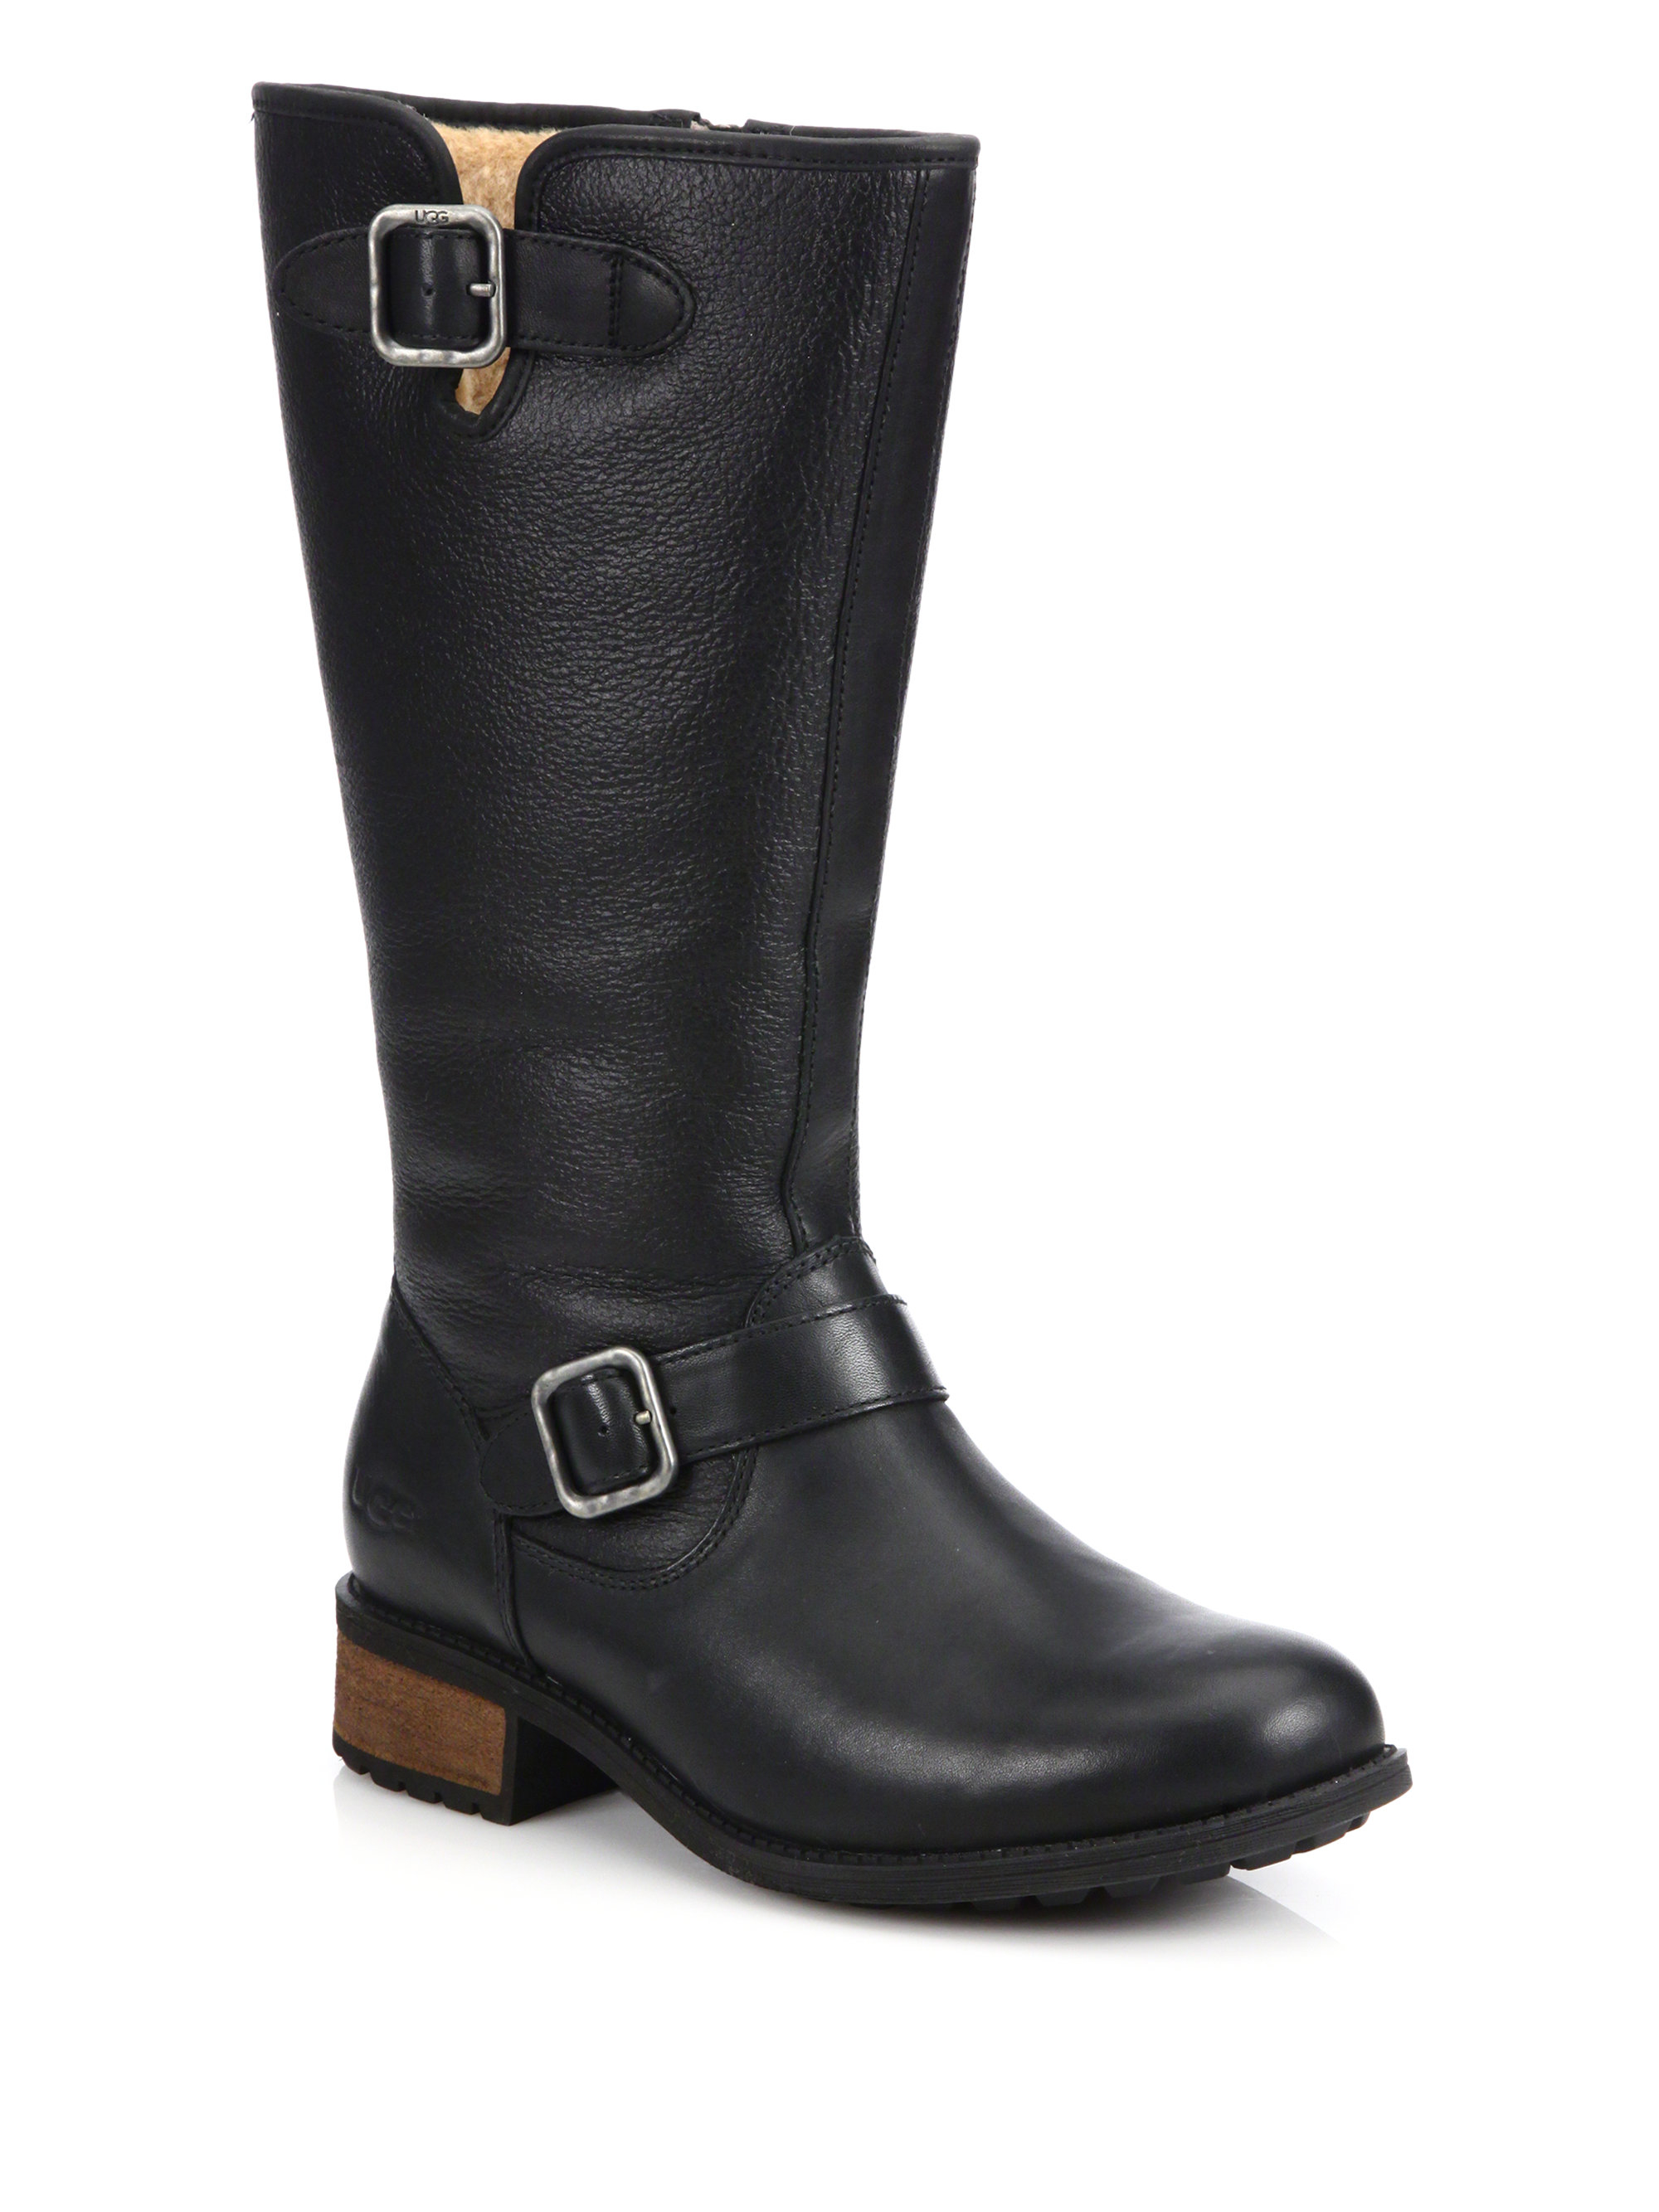 UGG Chancery Leather Womens Black Boots